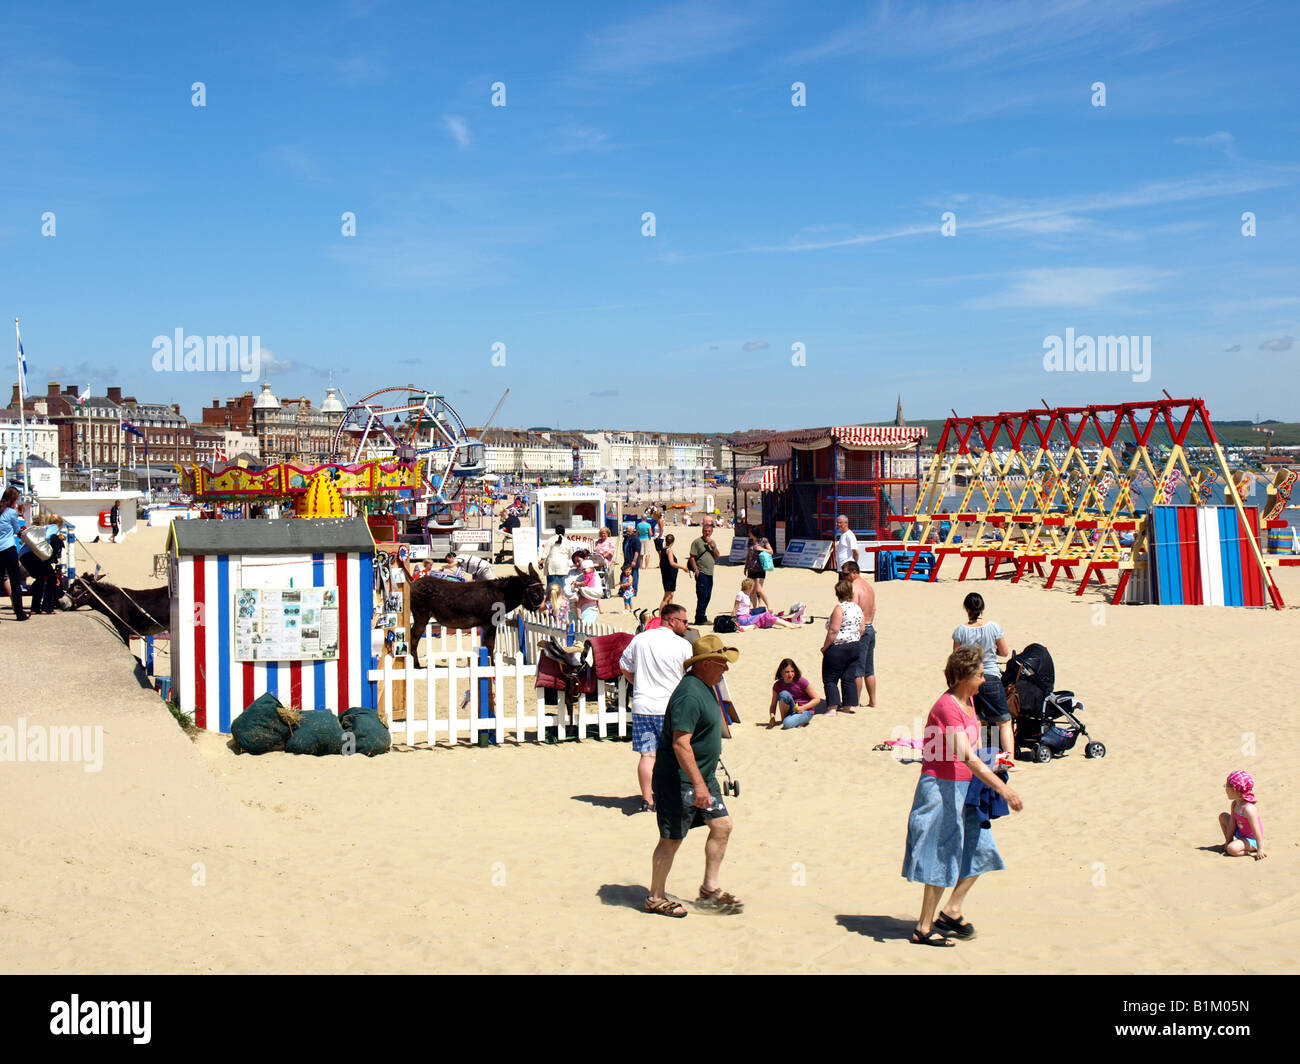 the children's entertainments on the beach at Weymouth,Dorset,UK. - Stock Image